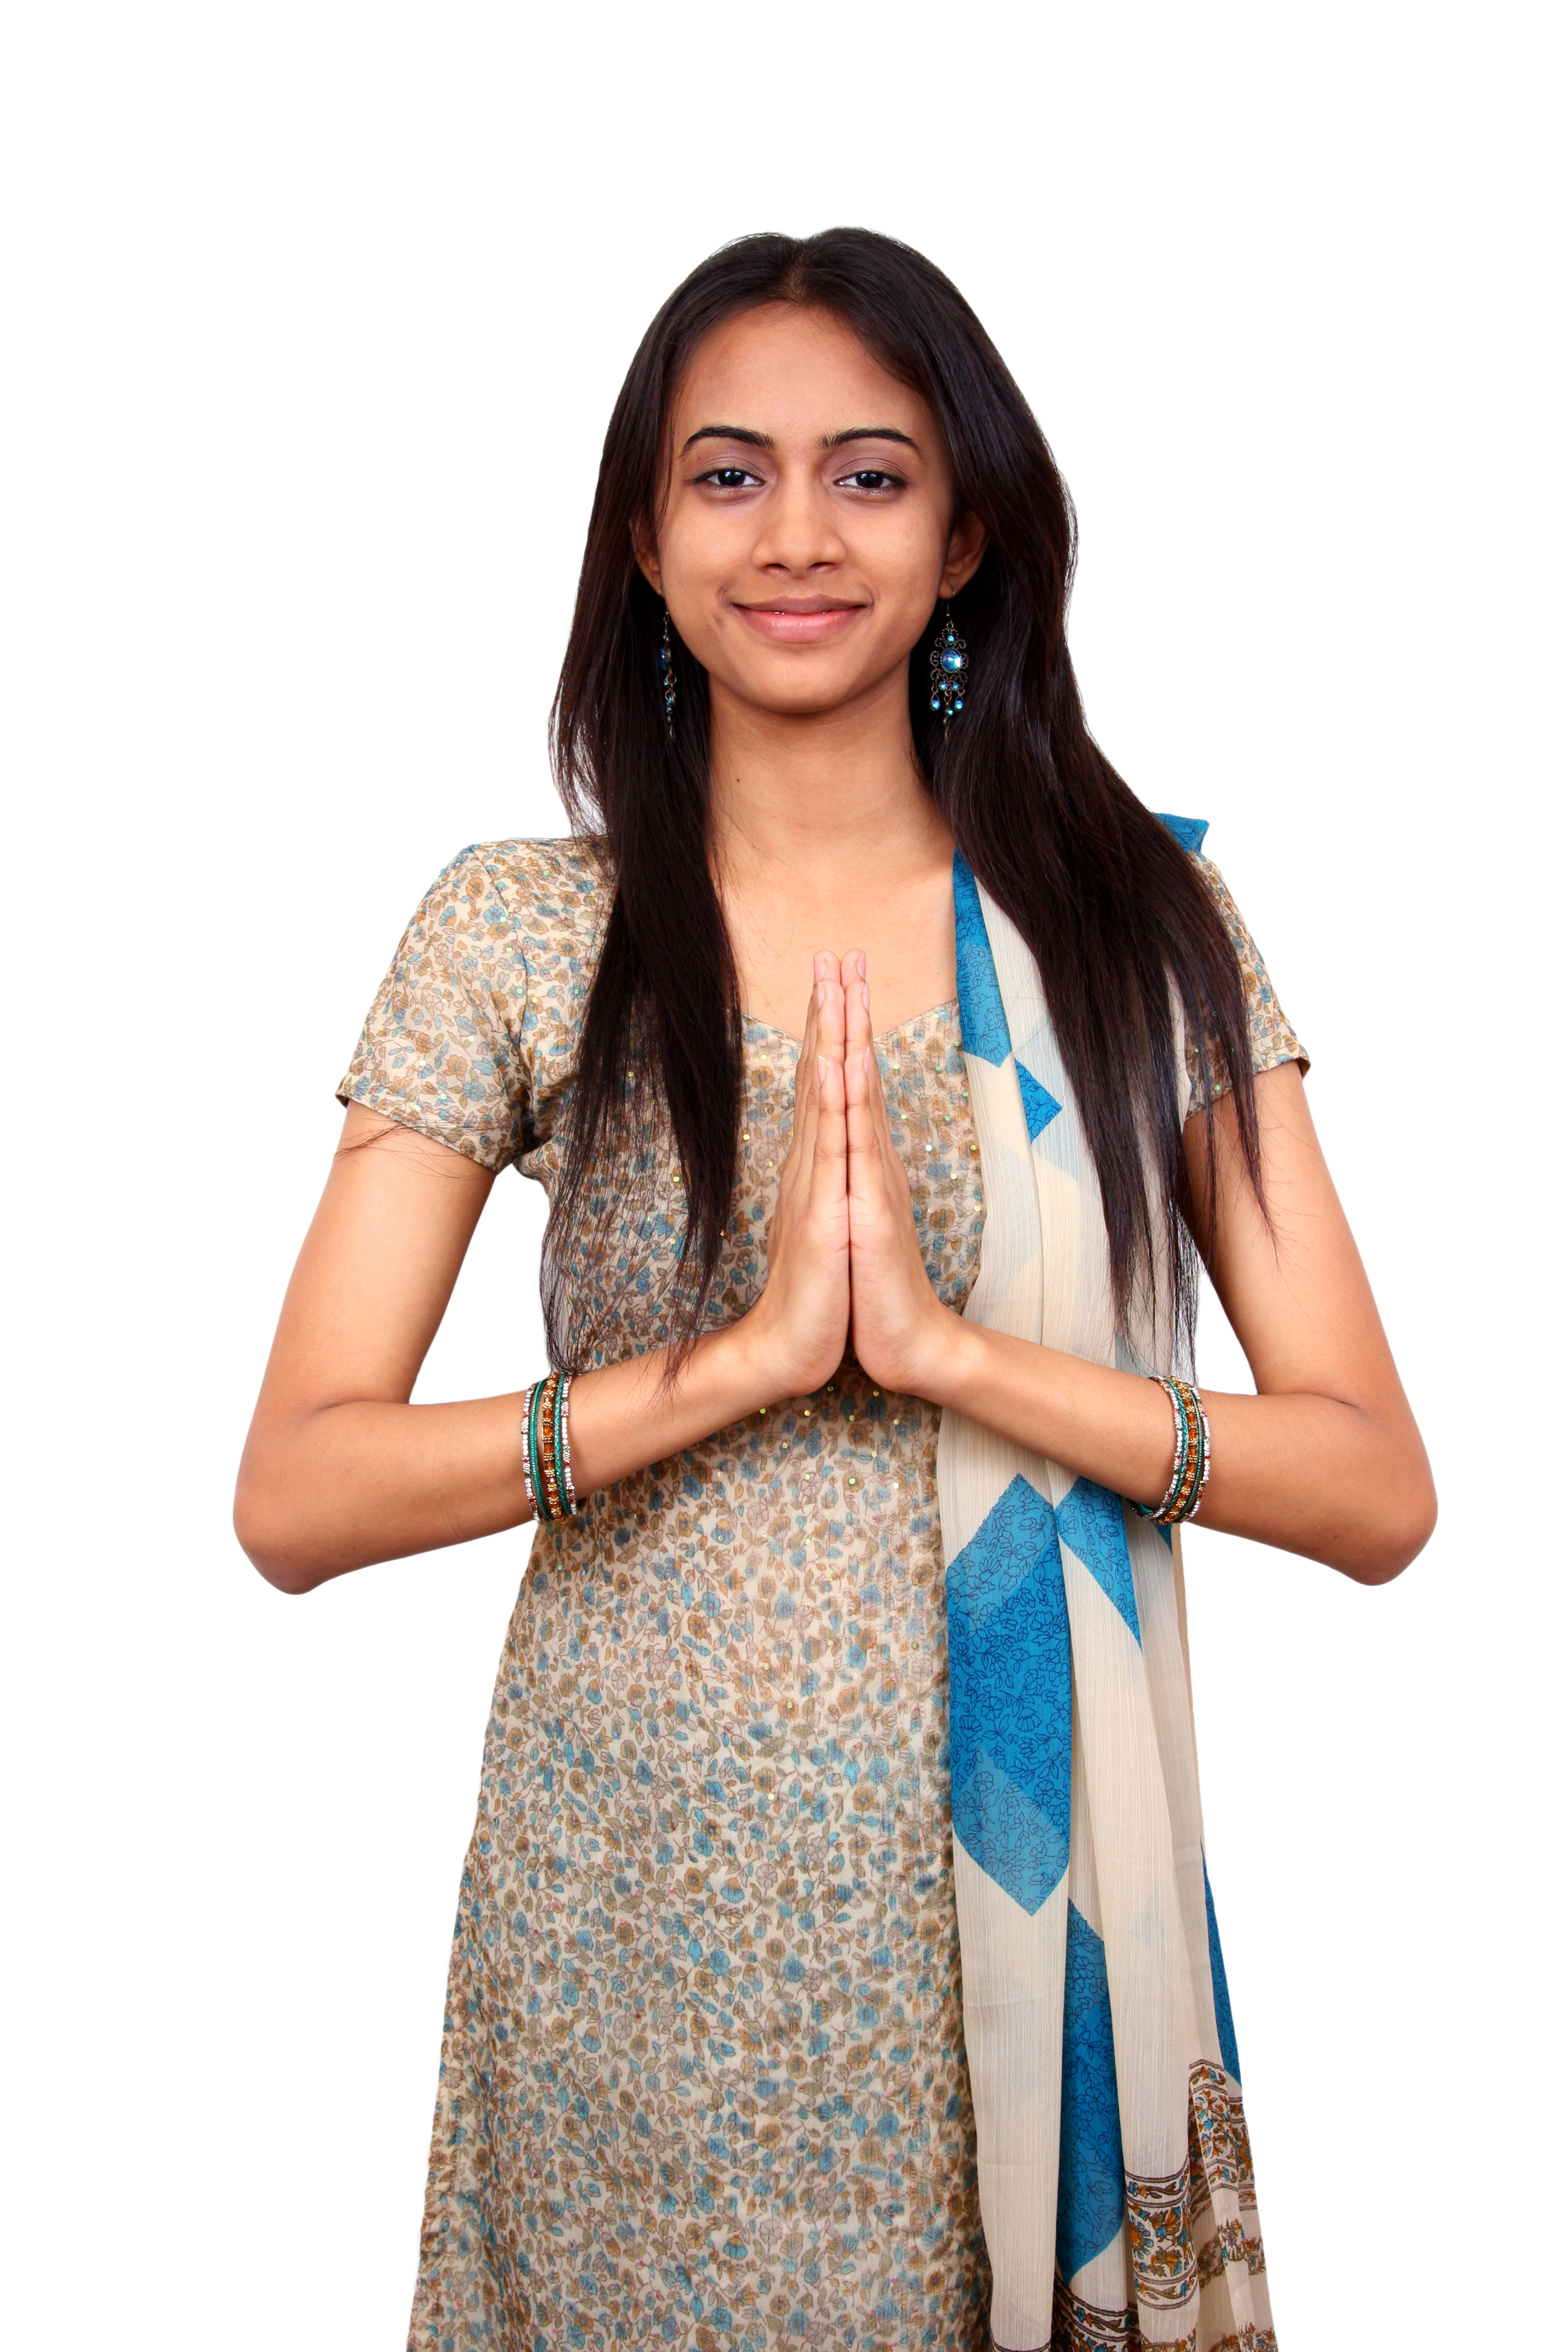 Wearing Traditional Indian Clothes Guaranteed Attractive